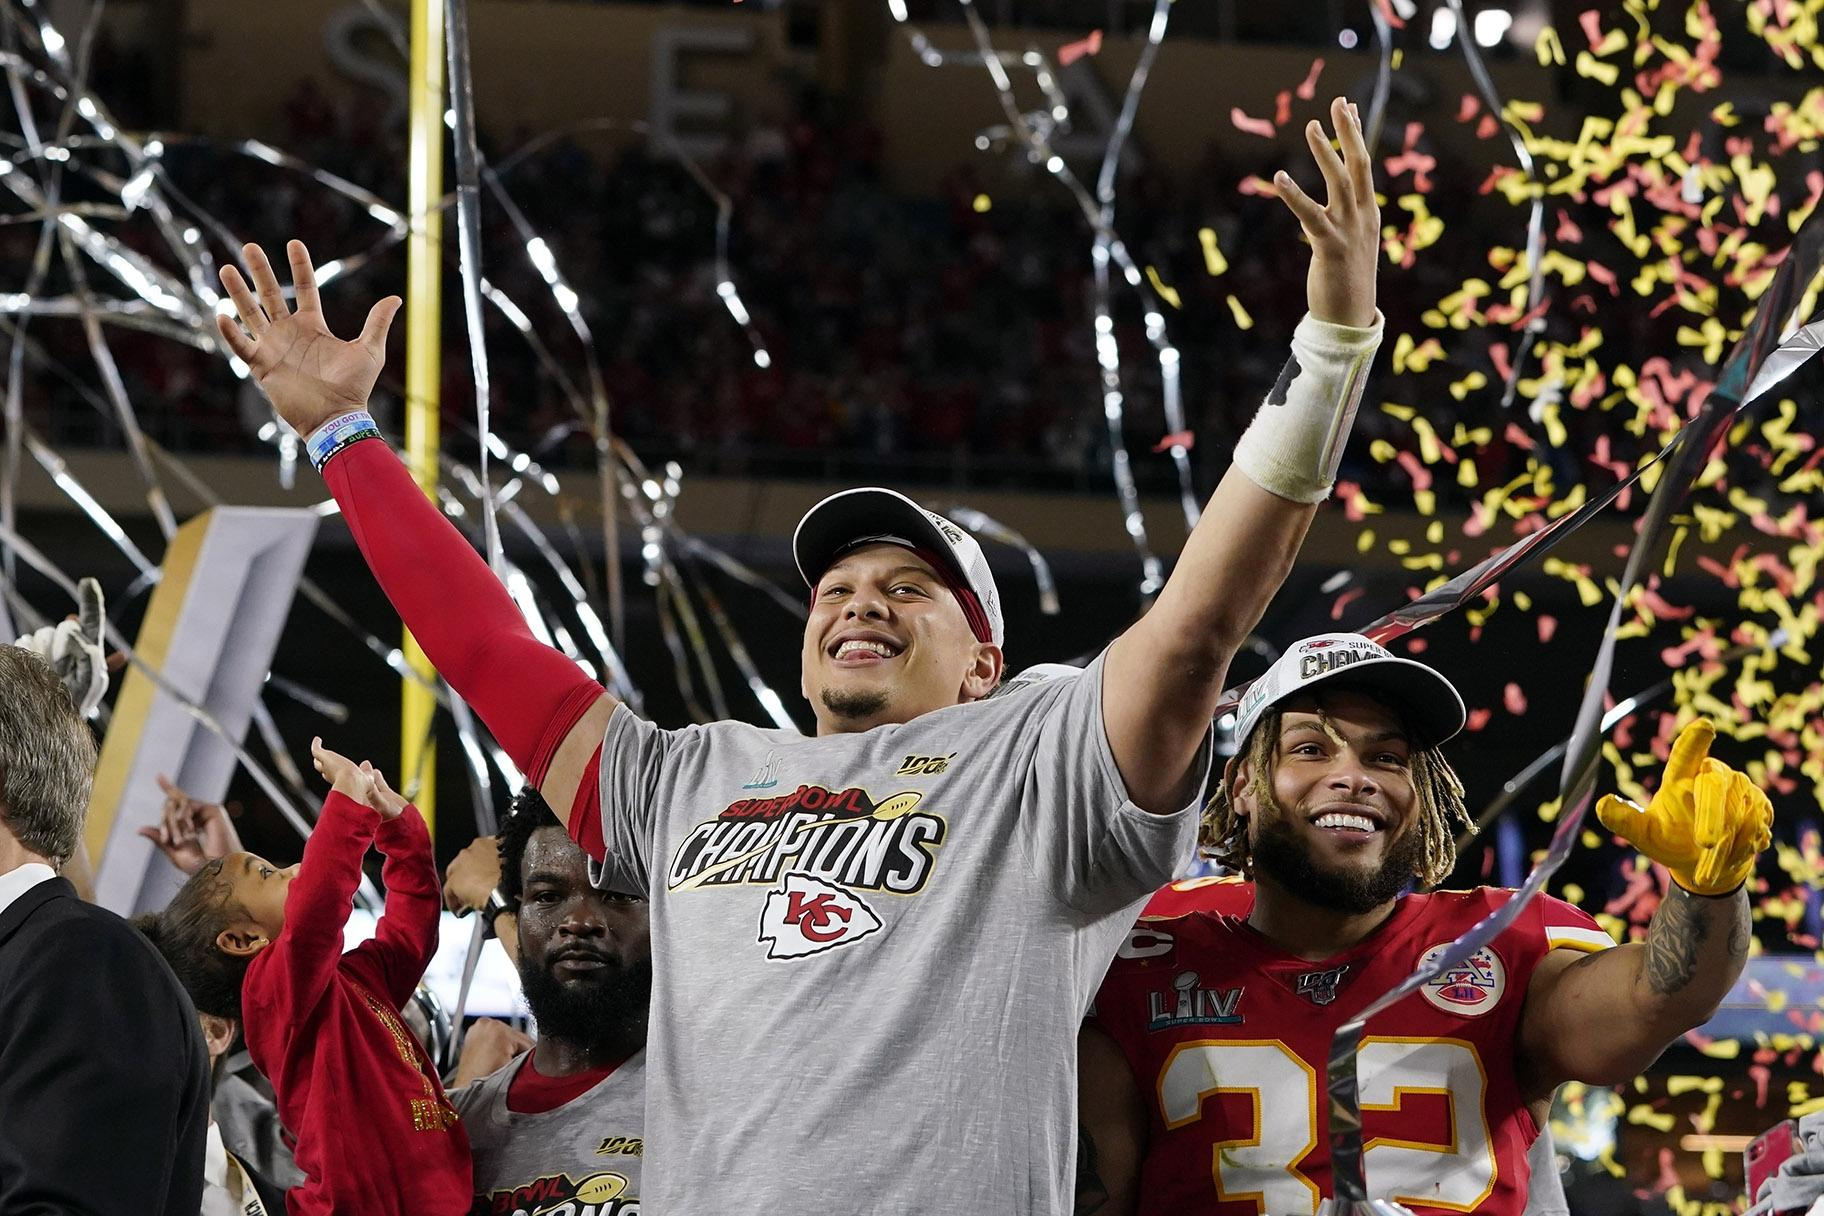 Kansas City Chiefs' Patrick Mahomes, left, and Tyrann Mathieu celebrate after defeating the San Francisco 49ers in the NFL Super Bowl 54 football game Sunday, Feb. 2, 2020, in Miami Gardens, Fla. (AP Photo / David J. Phillip)